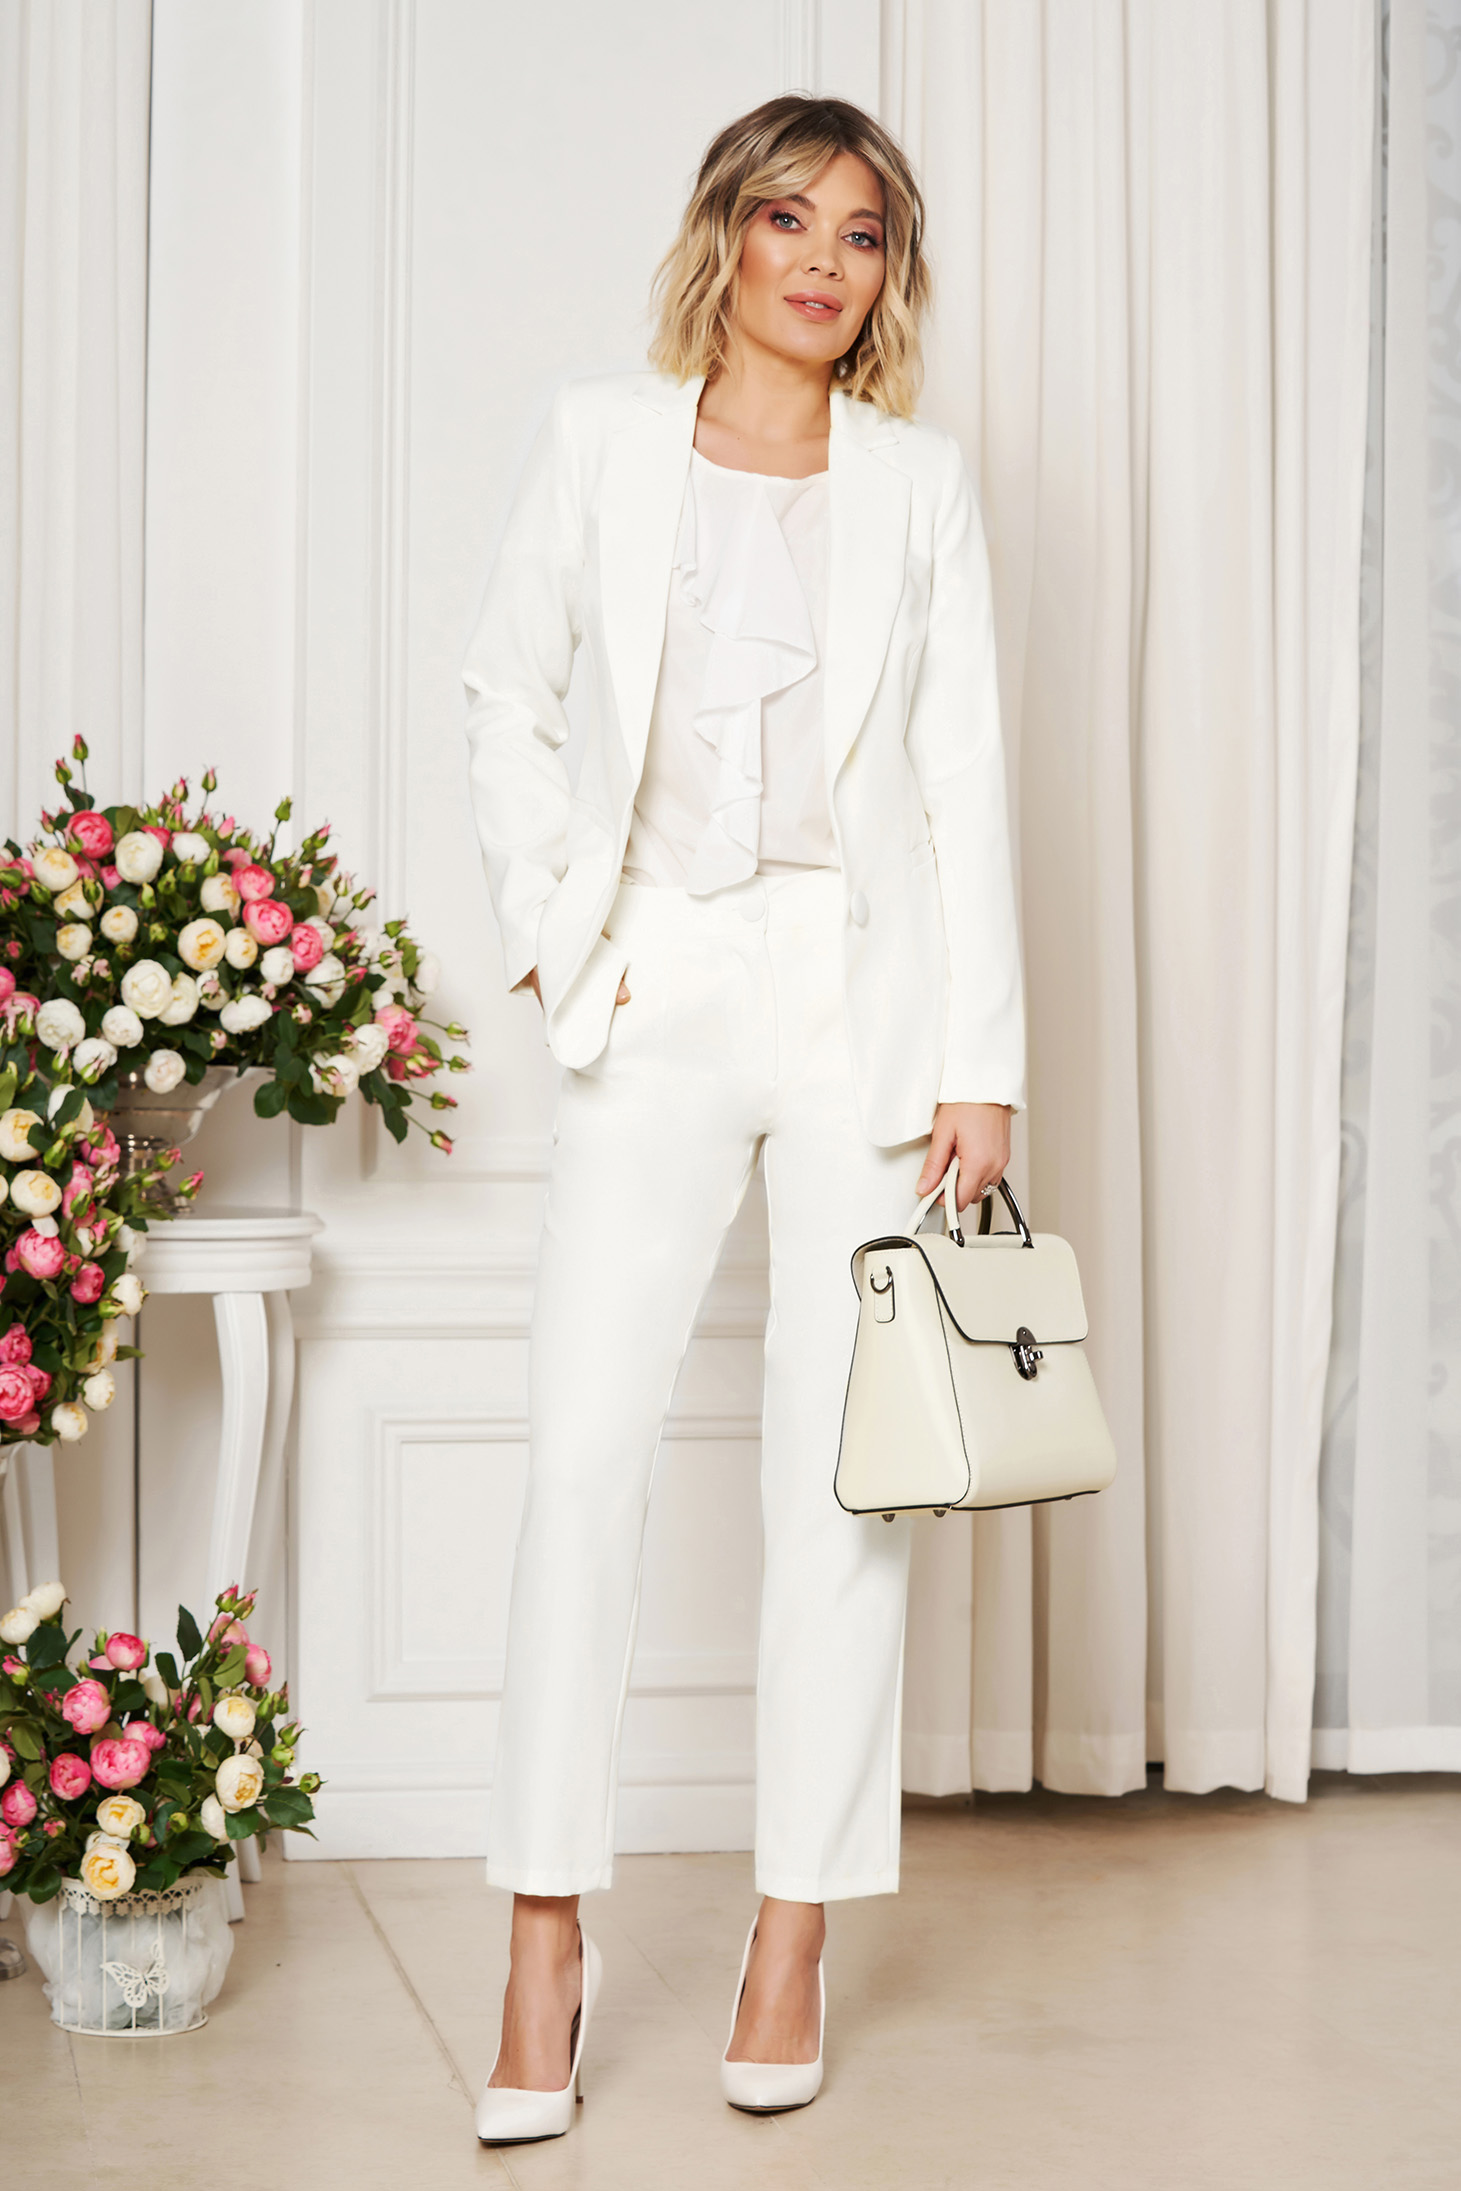 White office trousers with pockets medium waist slightly elastic fabric with straight cut